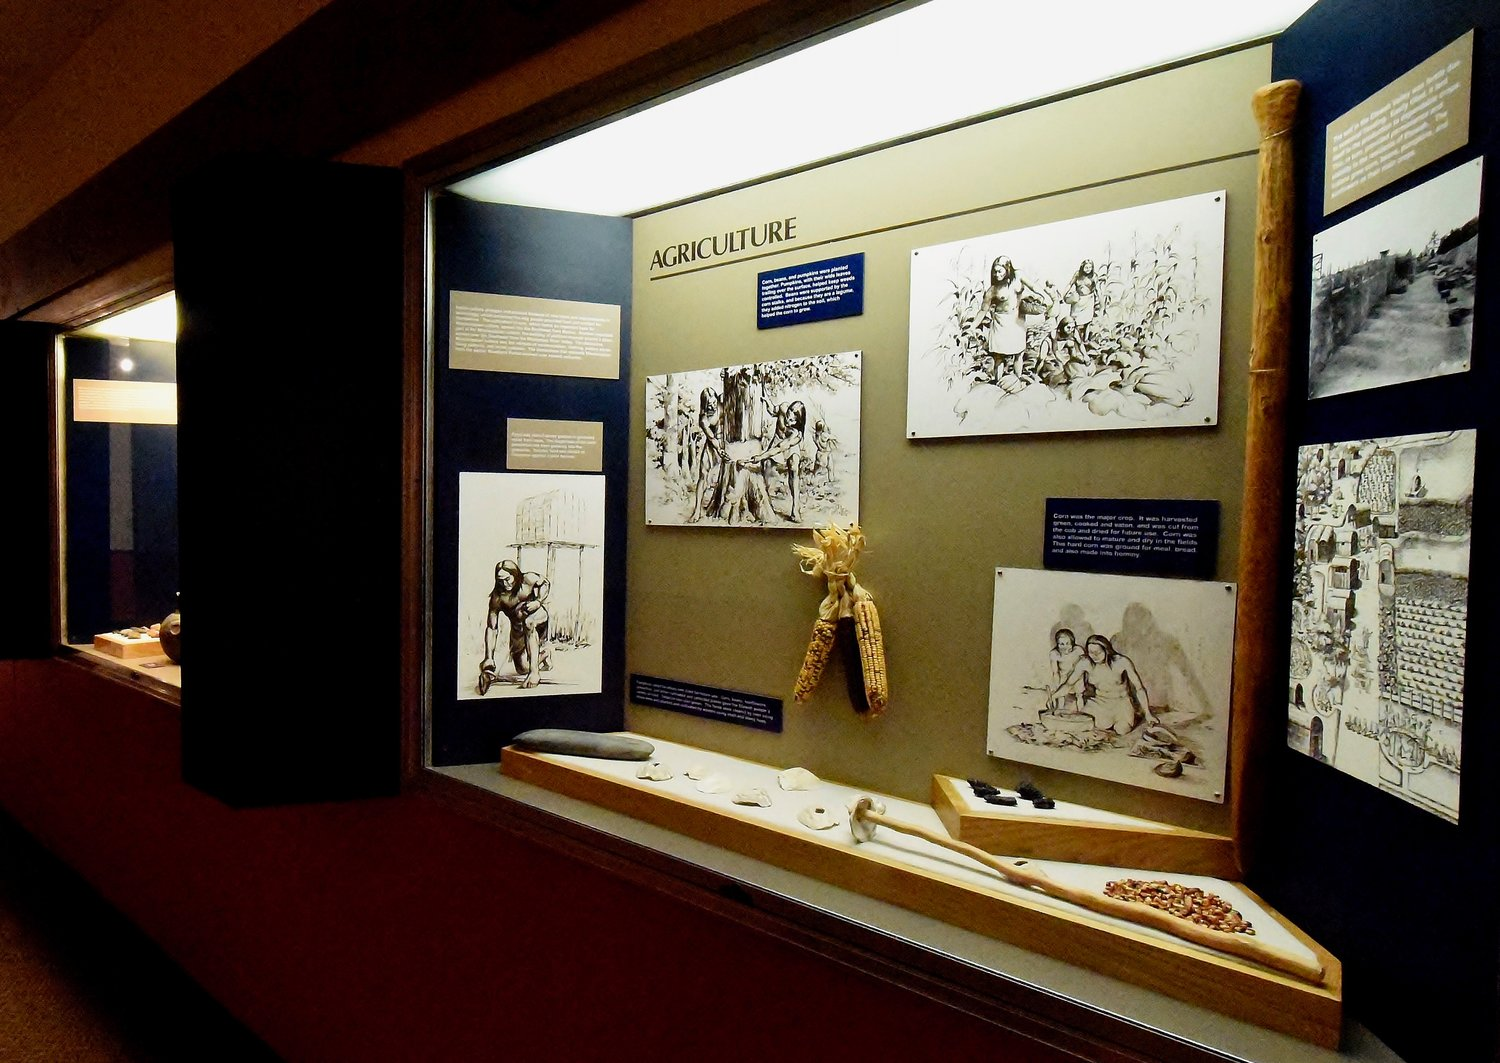 Guided tours of the Etowah Indian Mounds' museum will be offered Thursday and Jan. 22.